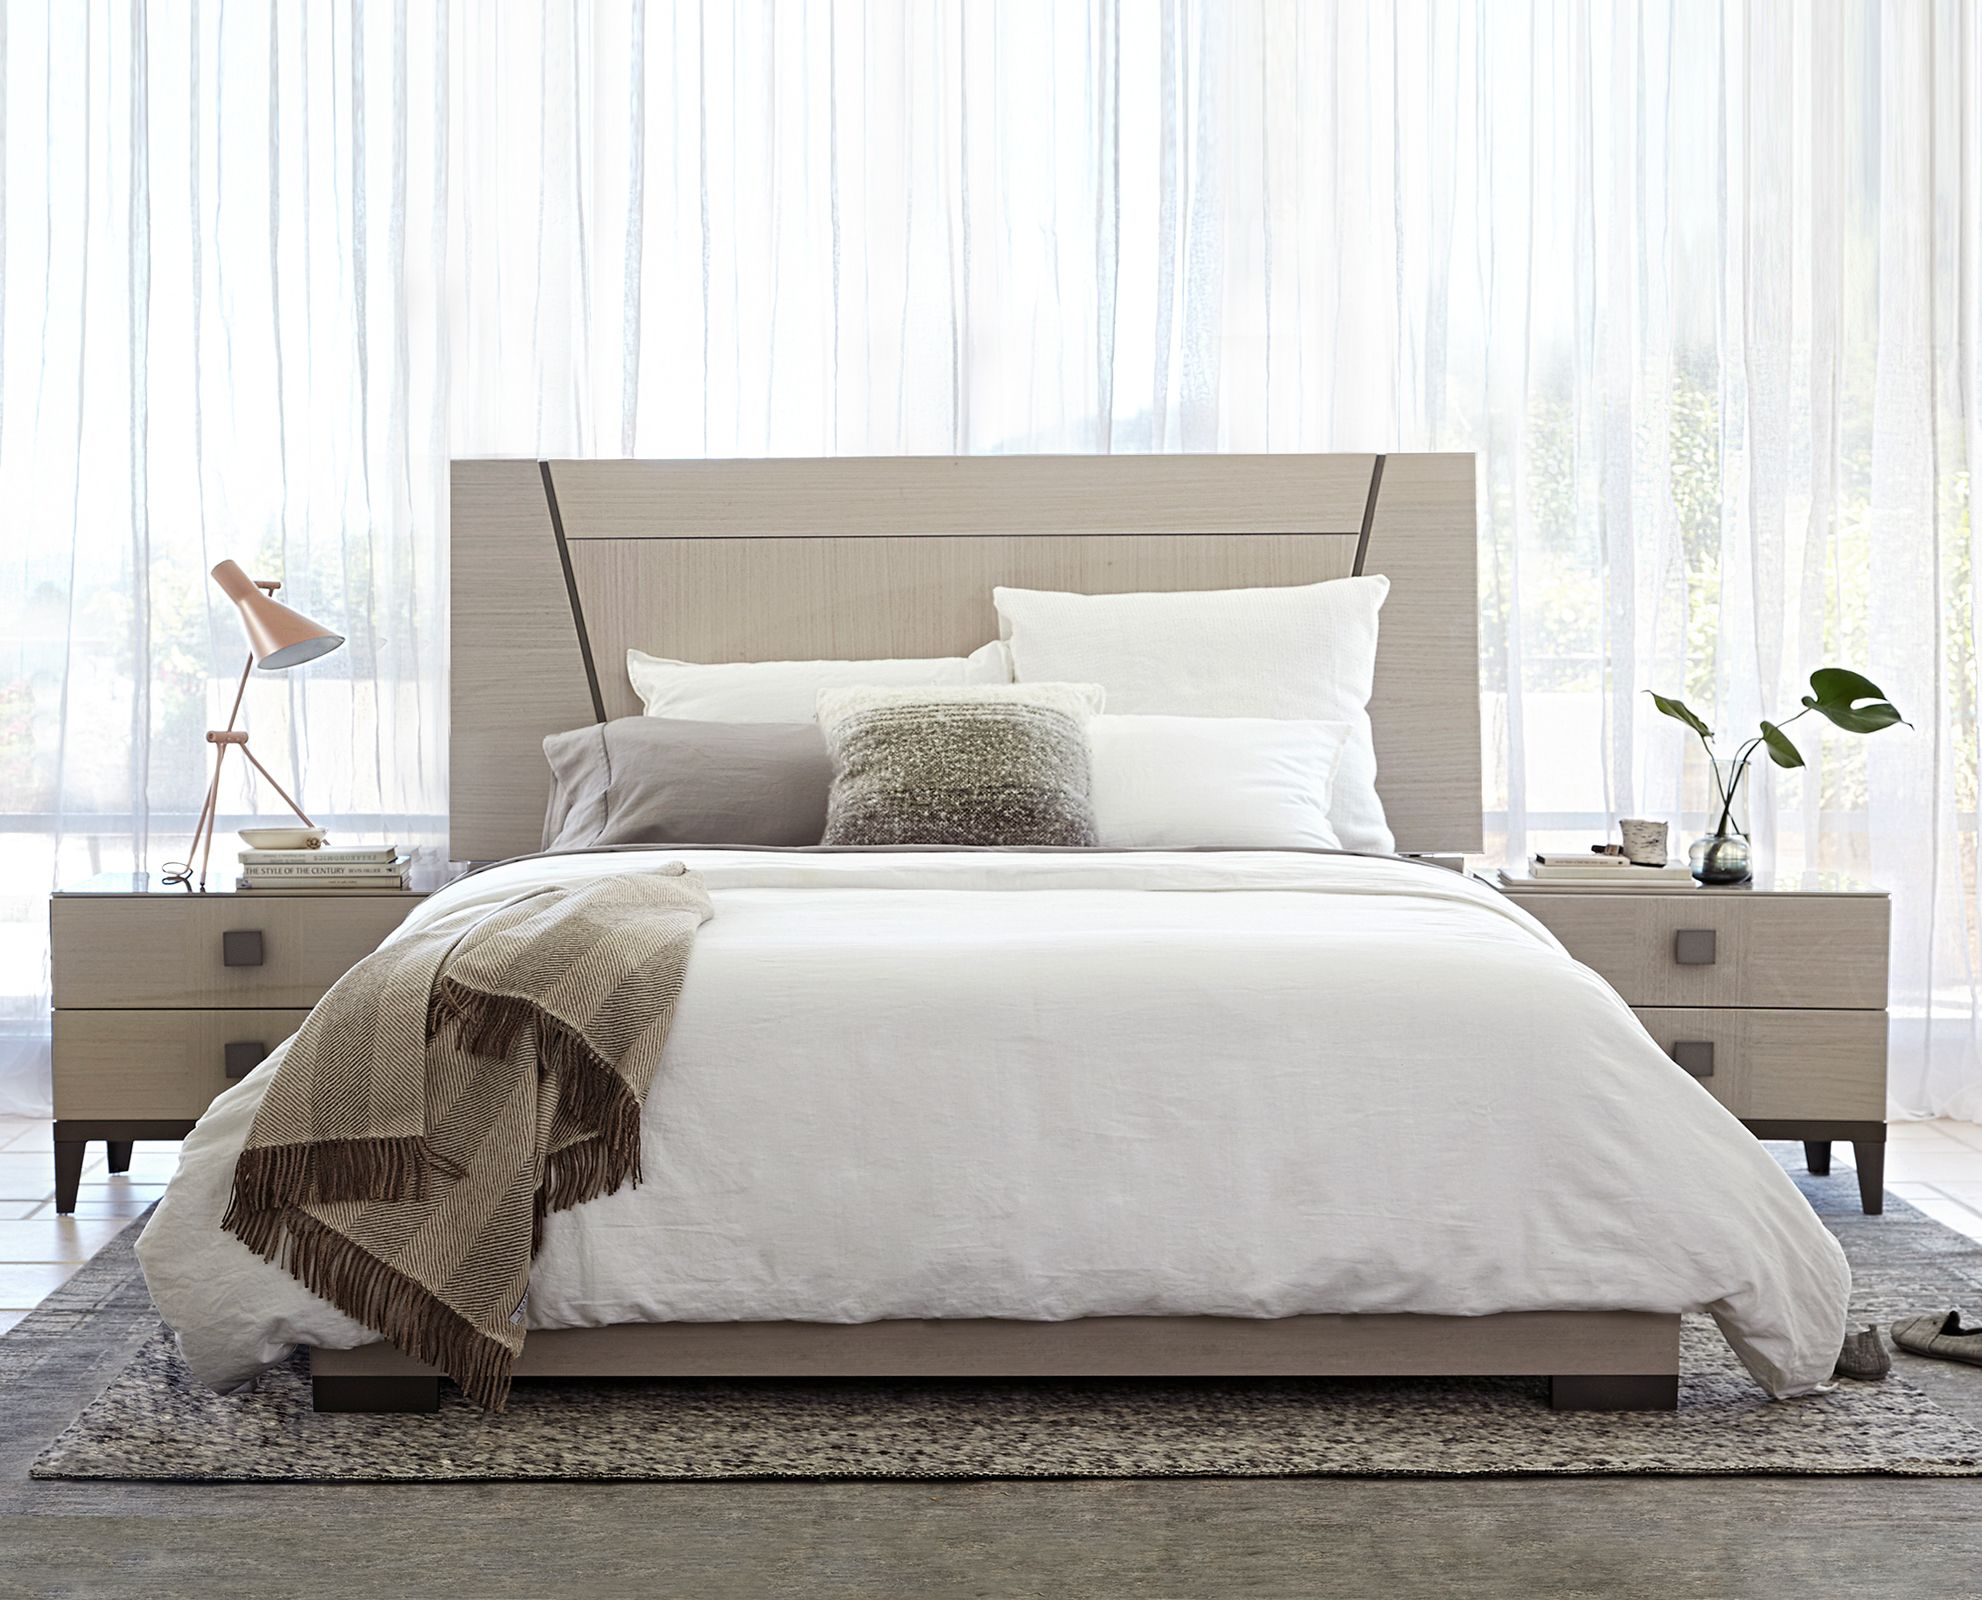 Monchiaro Bed and Nightstands from Dania Furniture Co modern